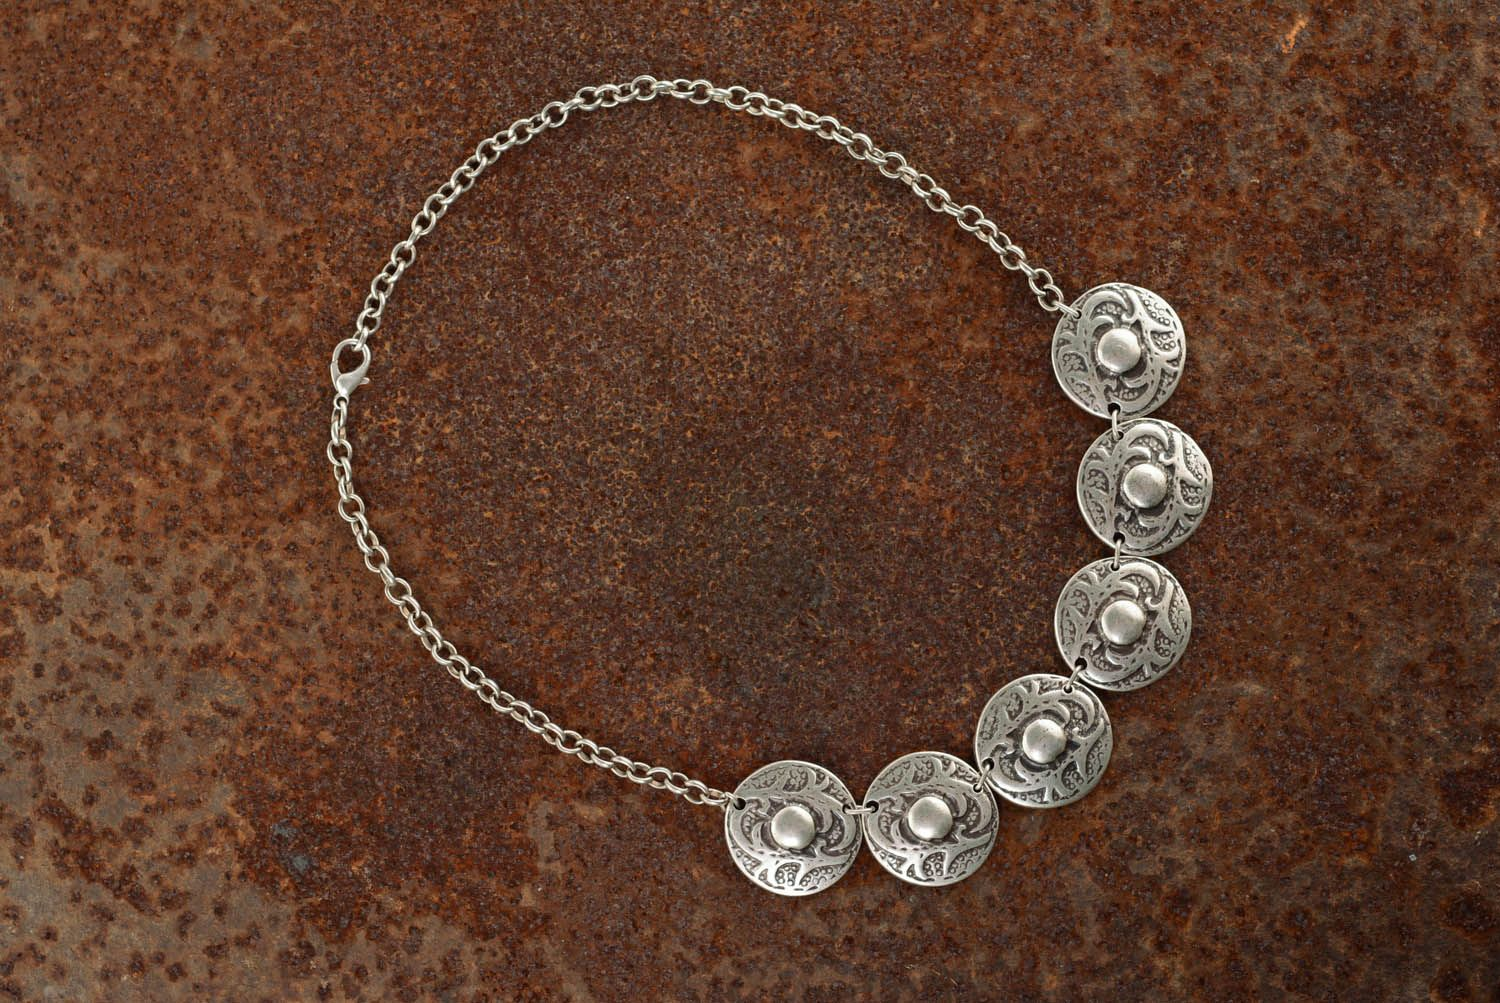 Necklace made of metal alloy photo 4